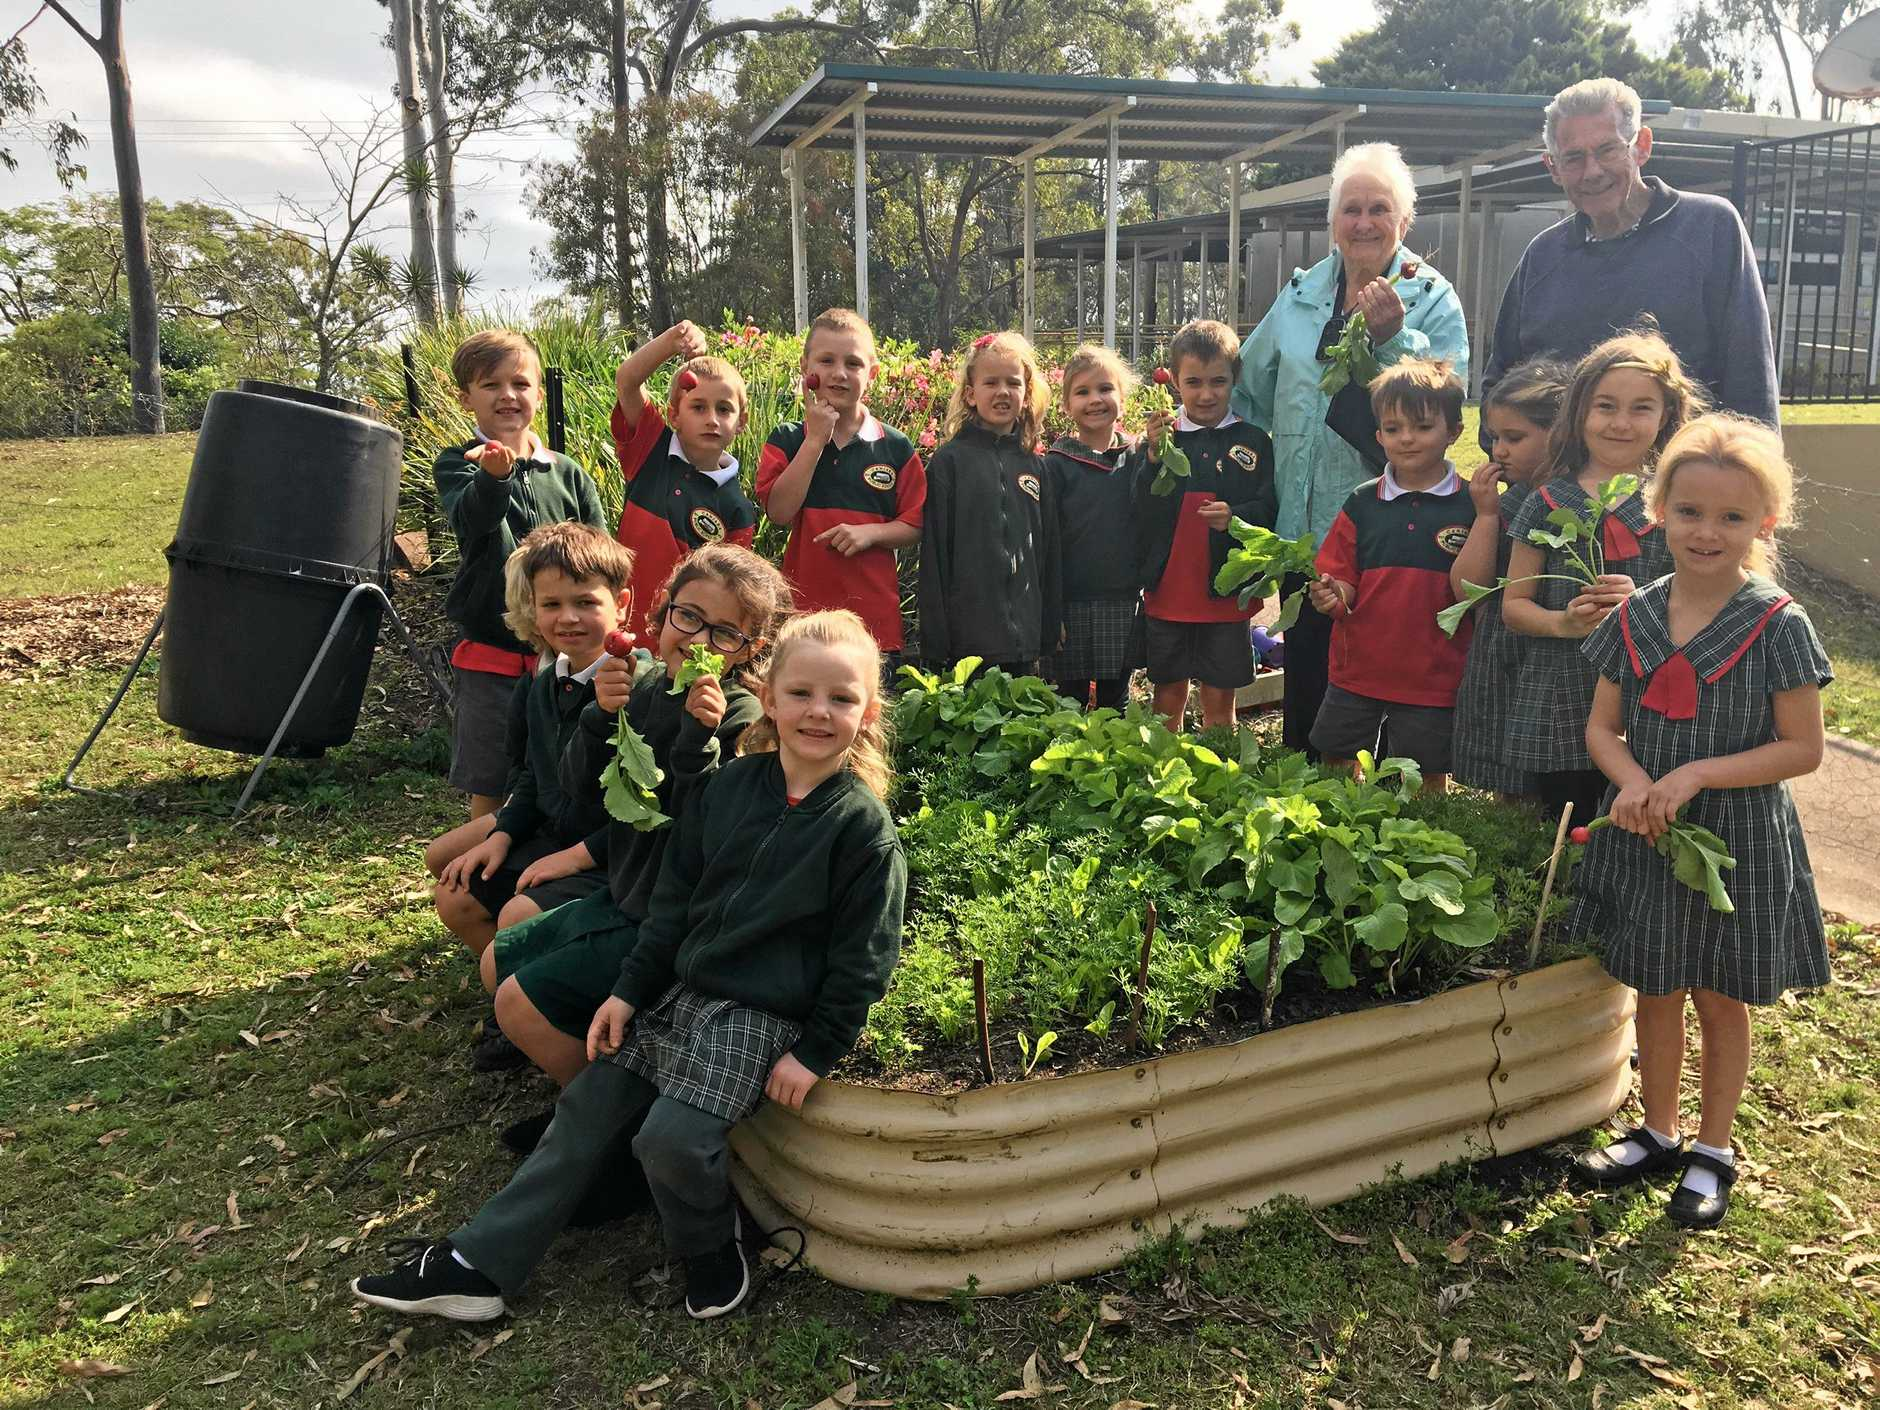 GREEN THUMBS: Caniaba Public School won first prize for their vegetable garden in the small schools garden division 2018 Lismore District Garden Club Spring competition.